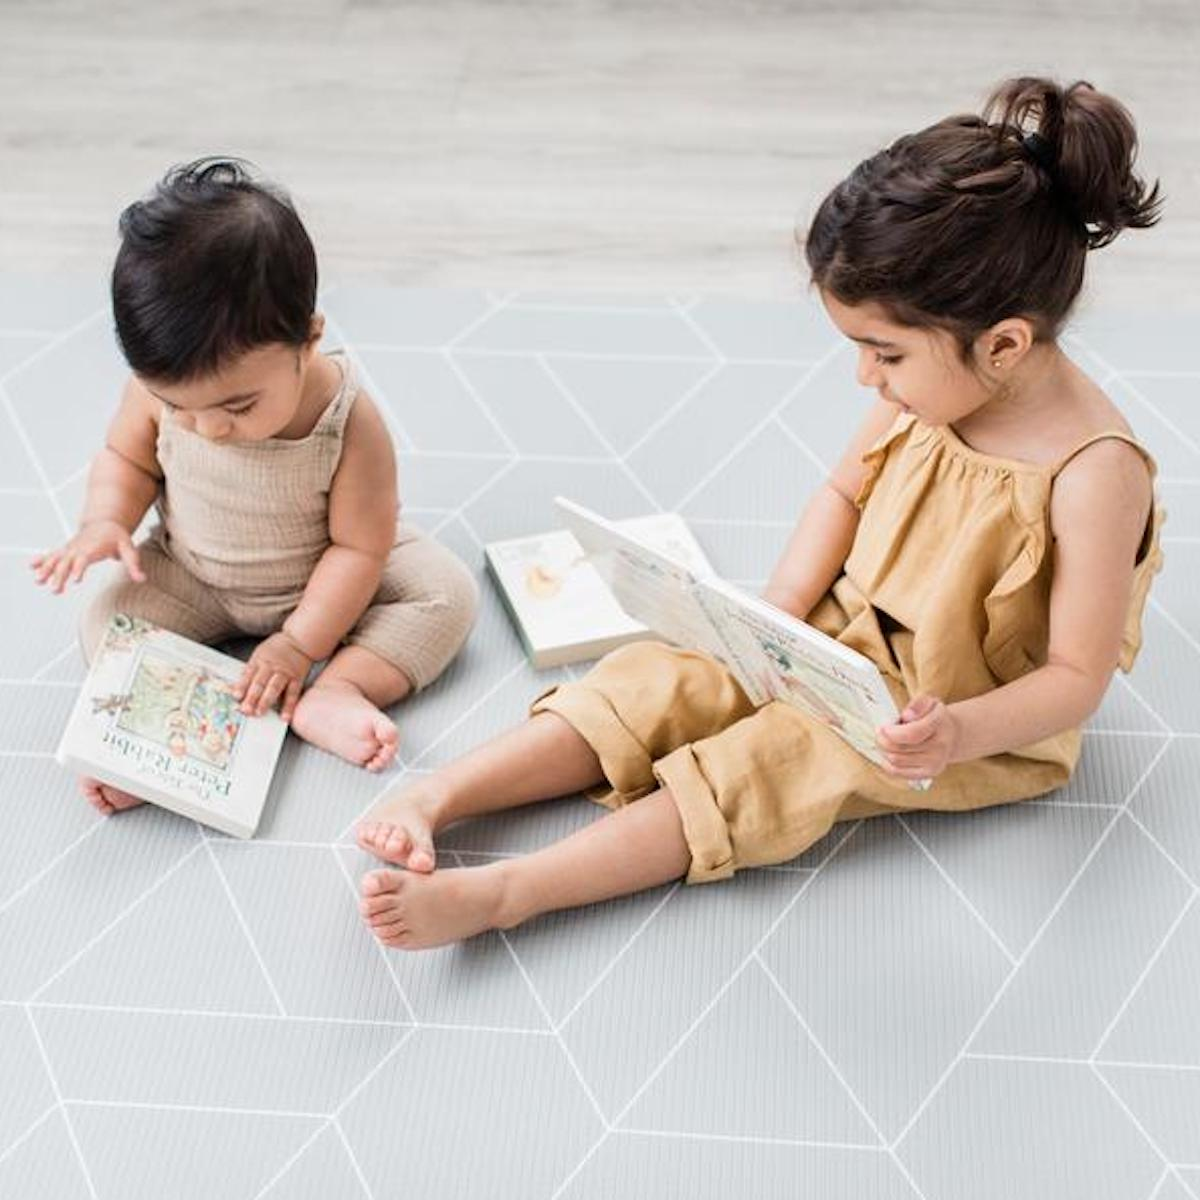 A little girl and an infant reading two books on a Little Bots playmat